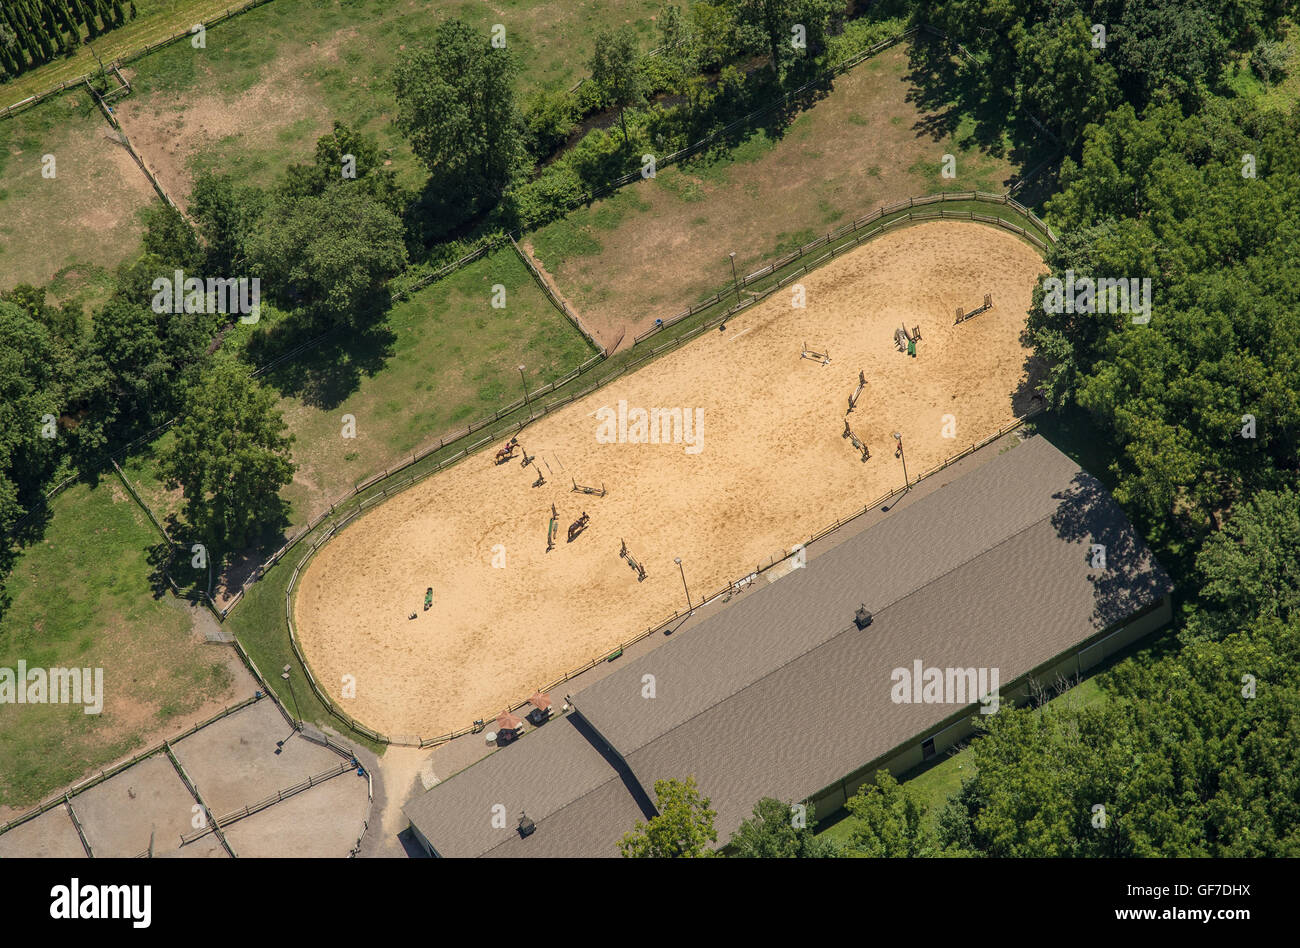 Aerial View Of Horse Equestrian Training Ring Facility - Stock Image